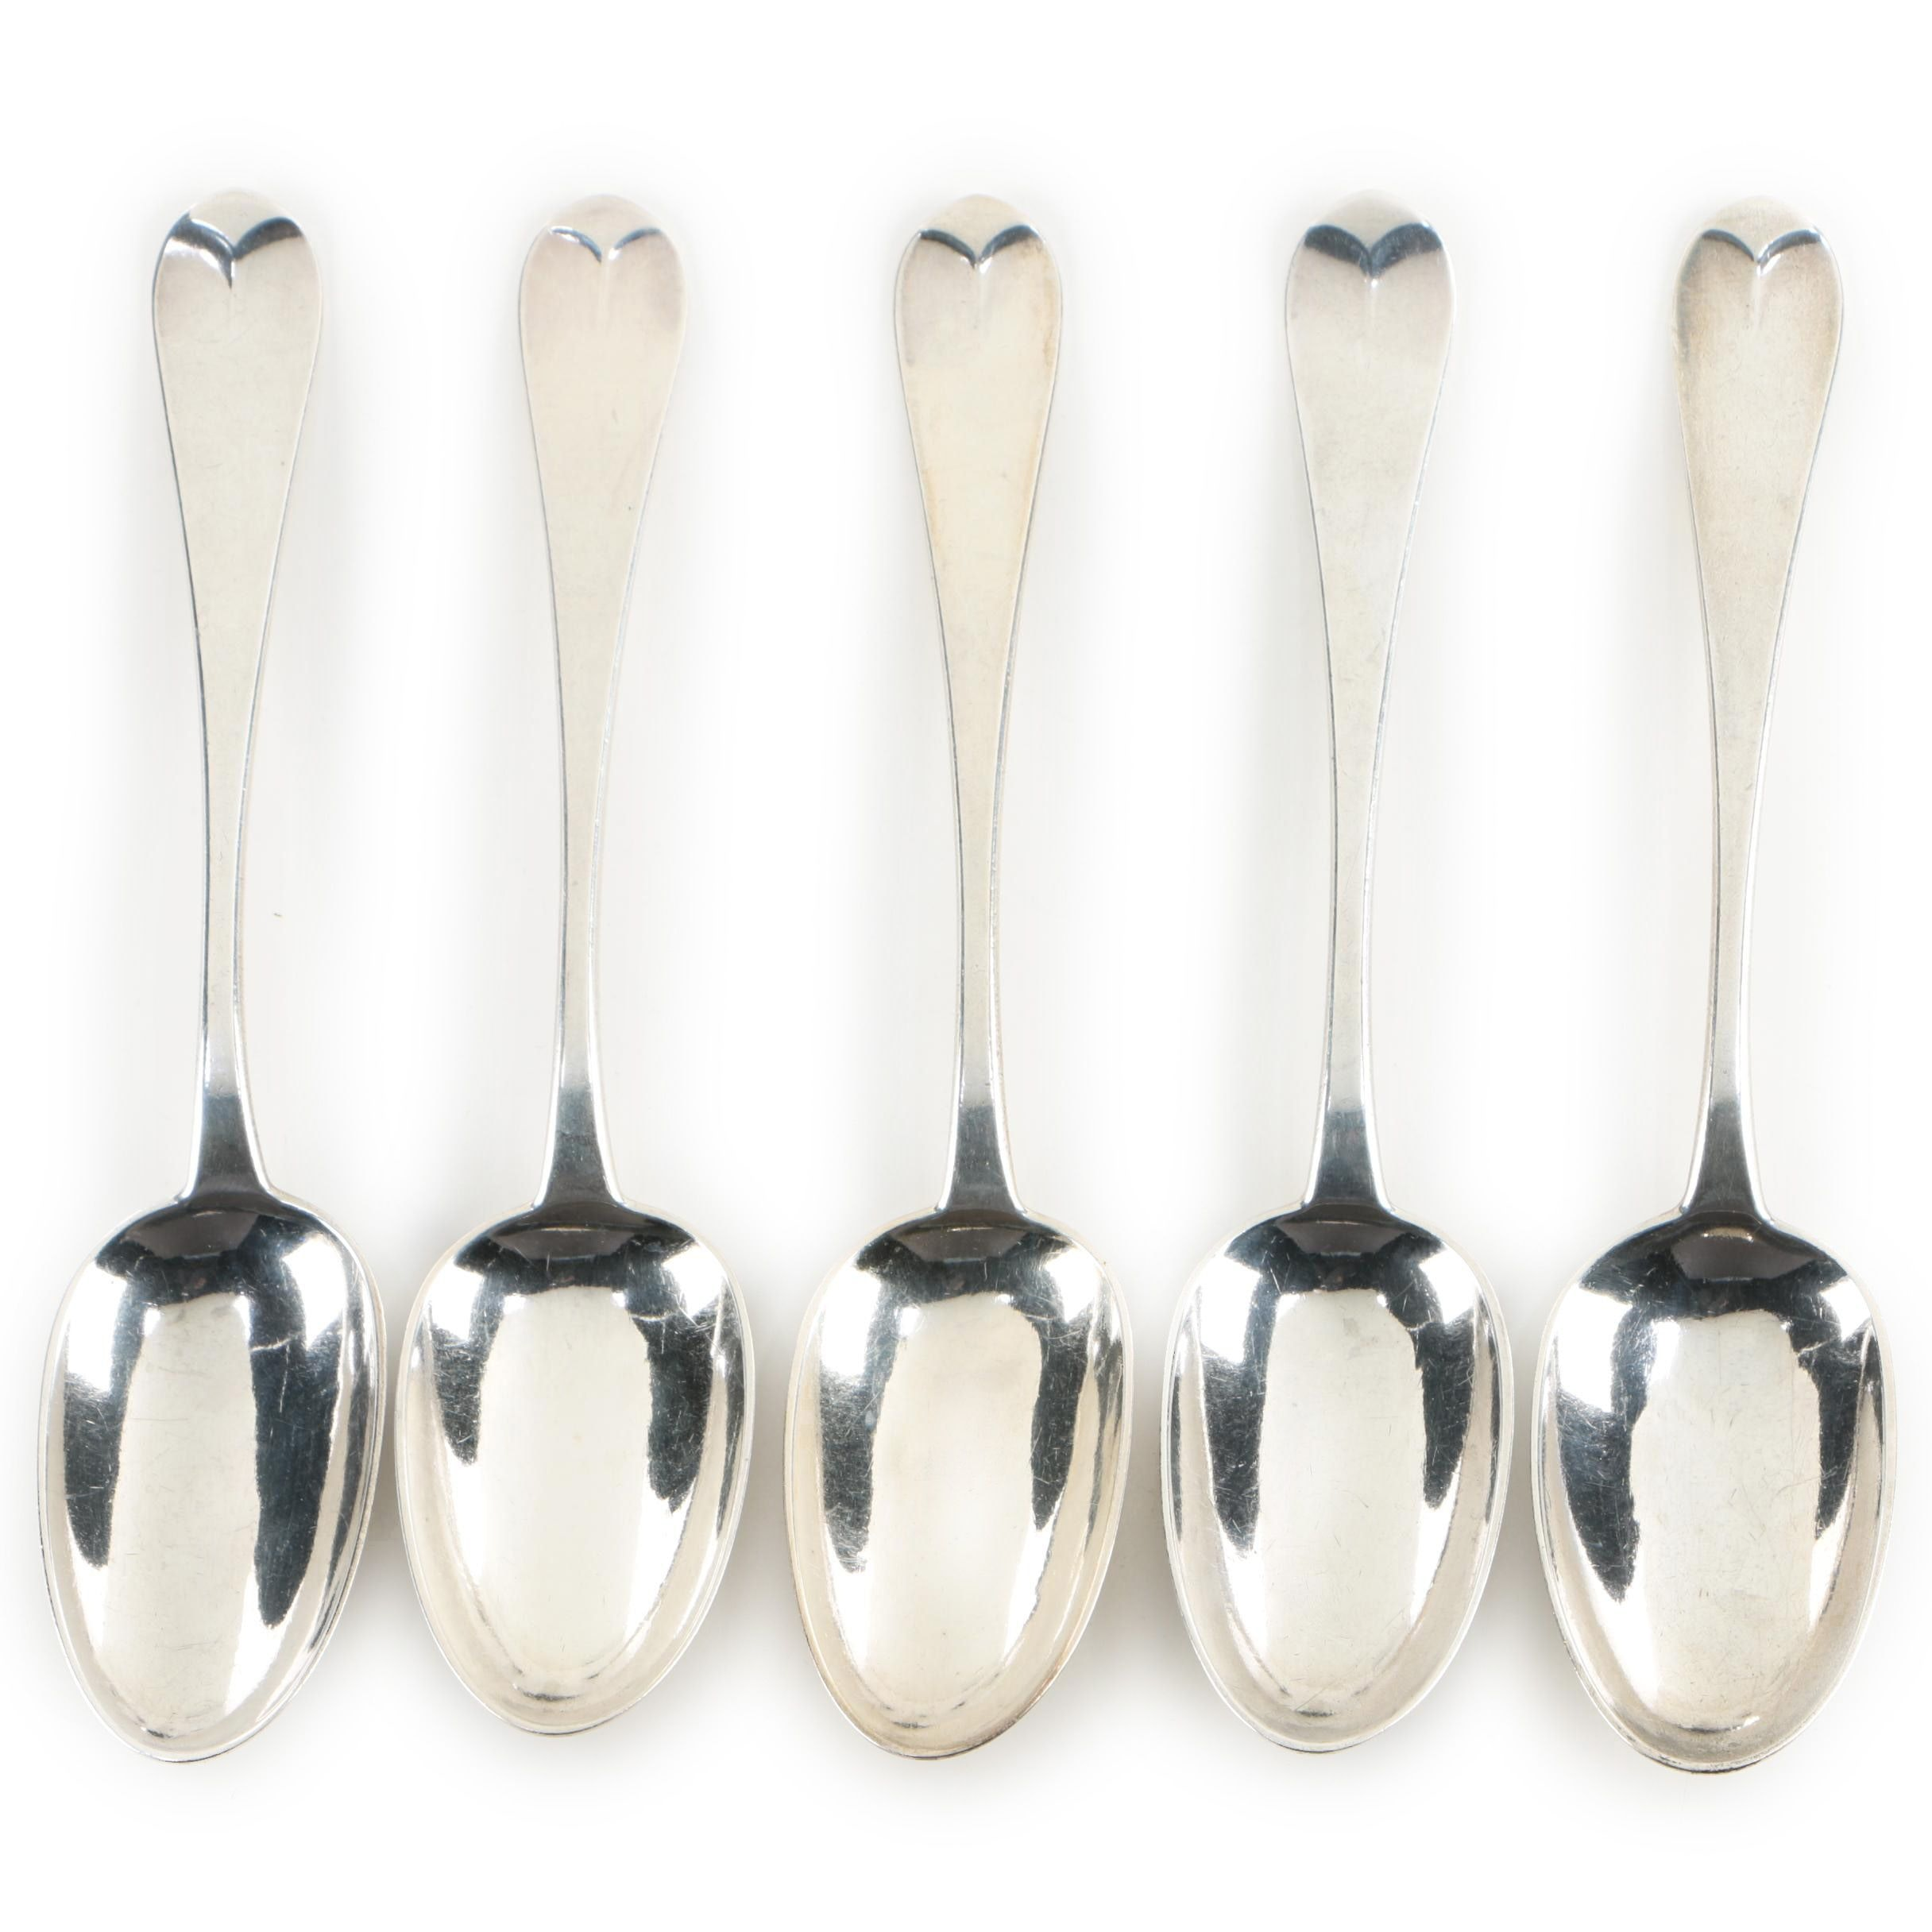 Lowell & Senter Portland Coin Silver Serving Spoons, 1830-1870